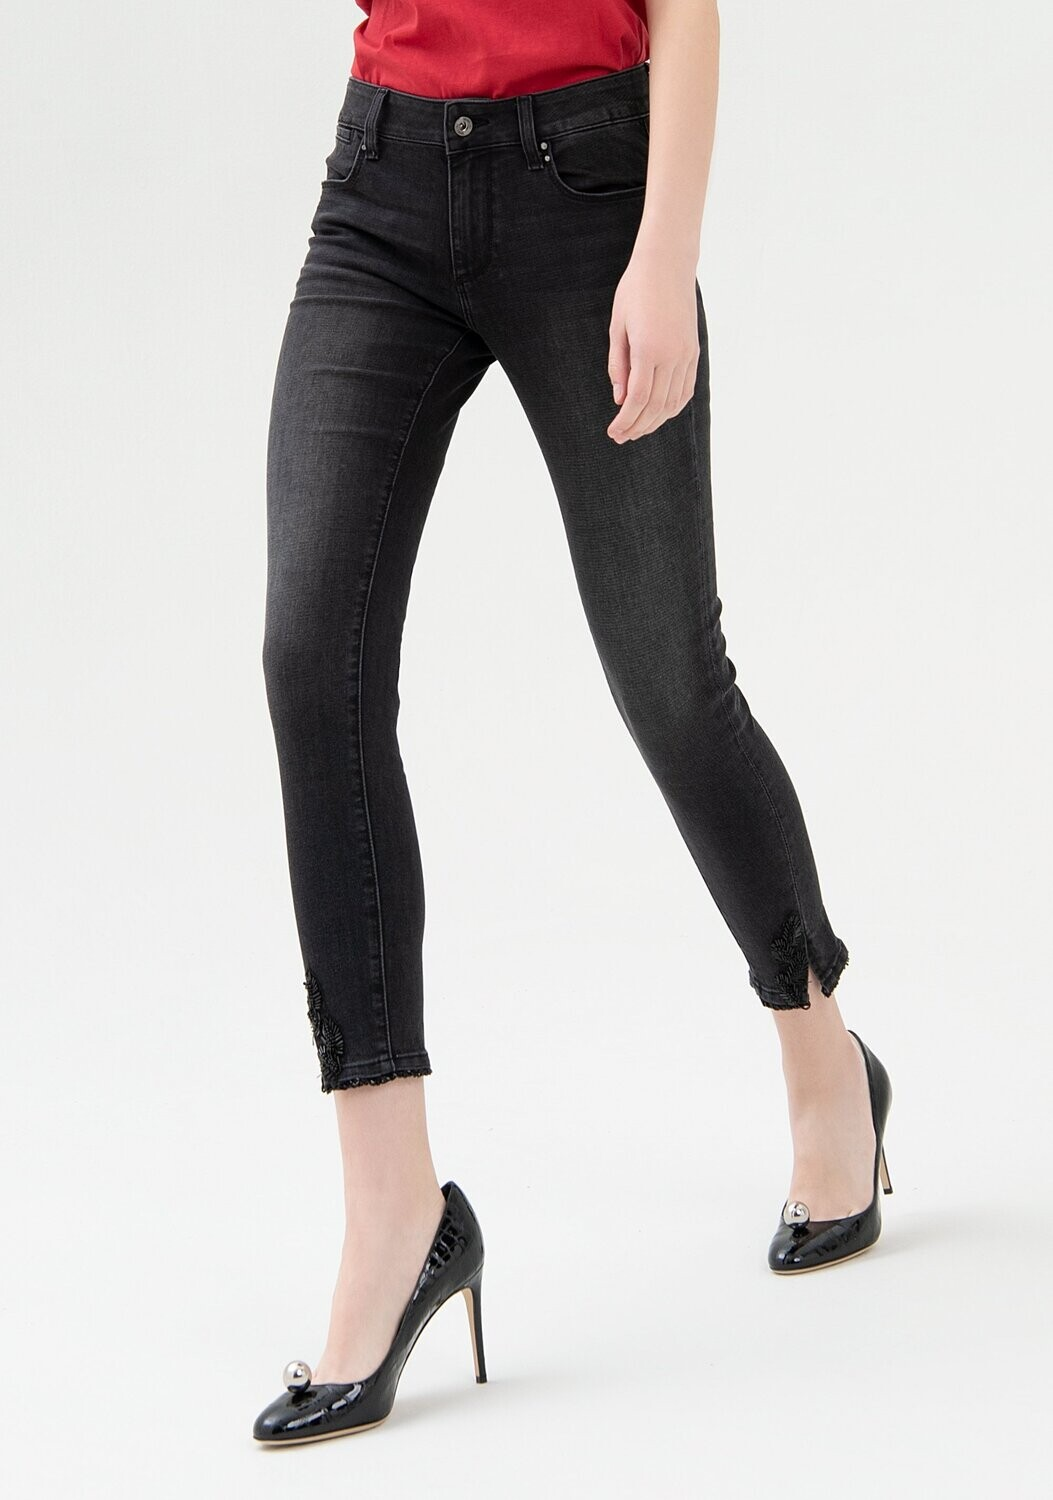 Jeans shape up skinny cropped